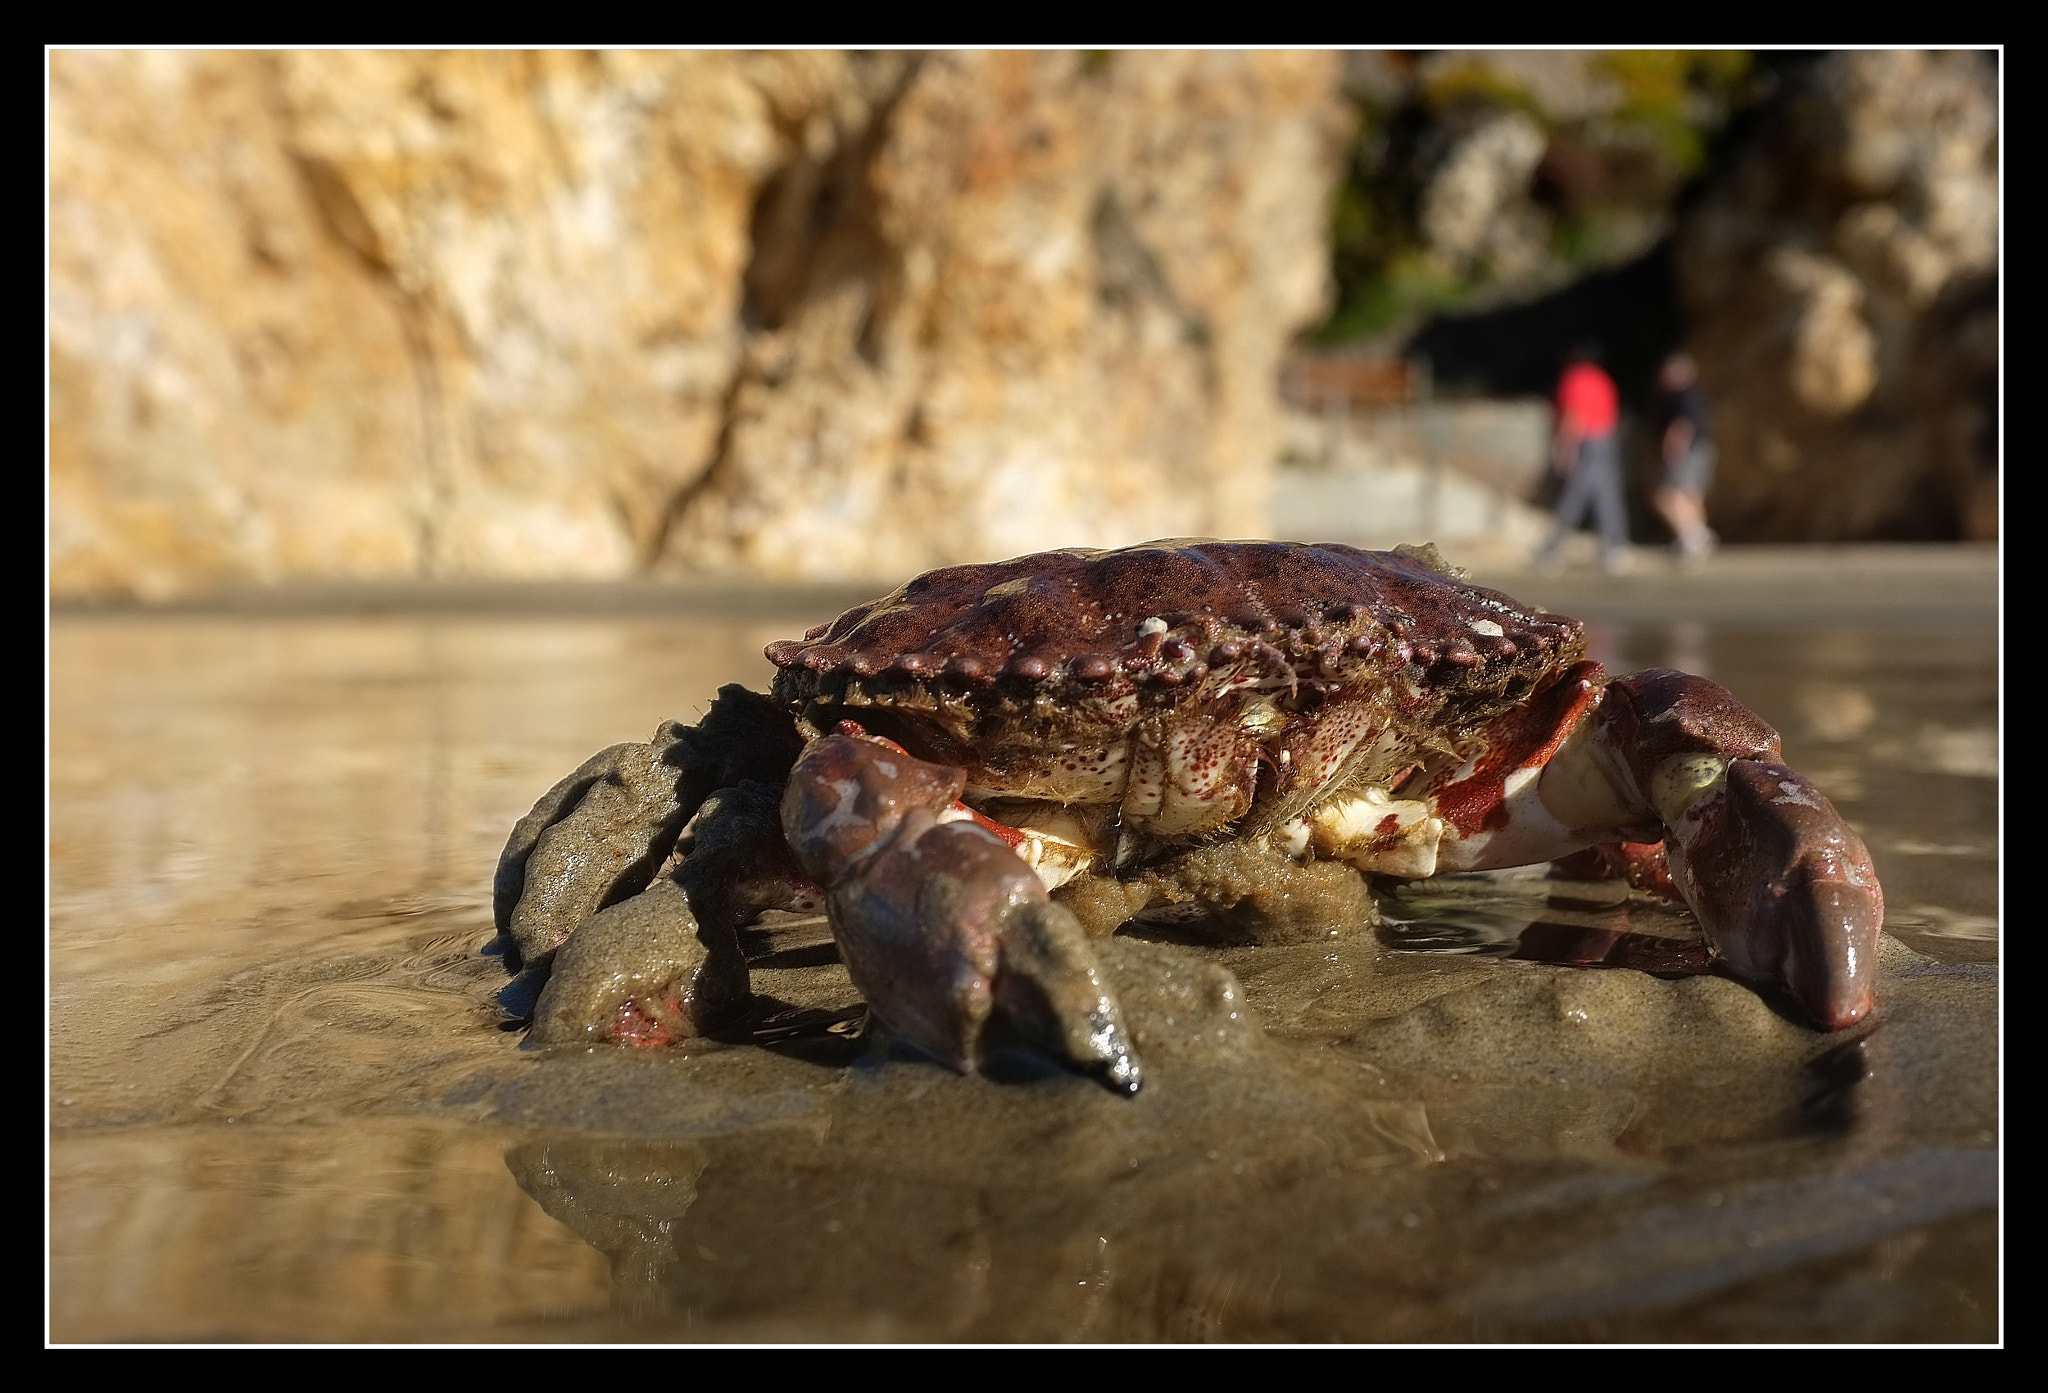 Photograph Pismo Beach crab by Ray Meese on 500px